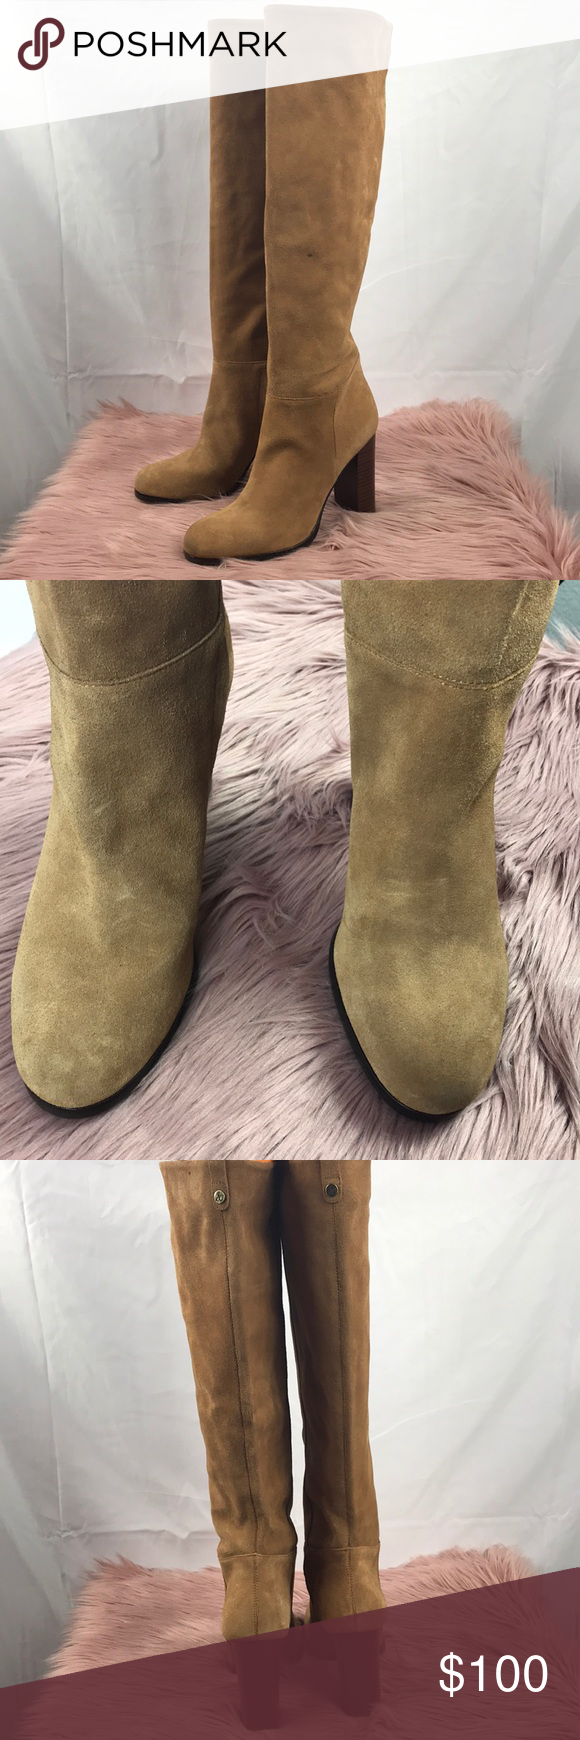 5a110df34ebb Sam Edelman Women s Silas Slouch Boot GENTLY USED with MINOR DEFECTS COMES  WITH NO ORIGINAL BOX